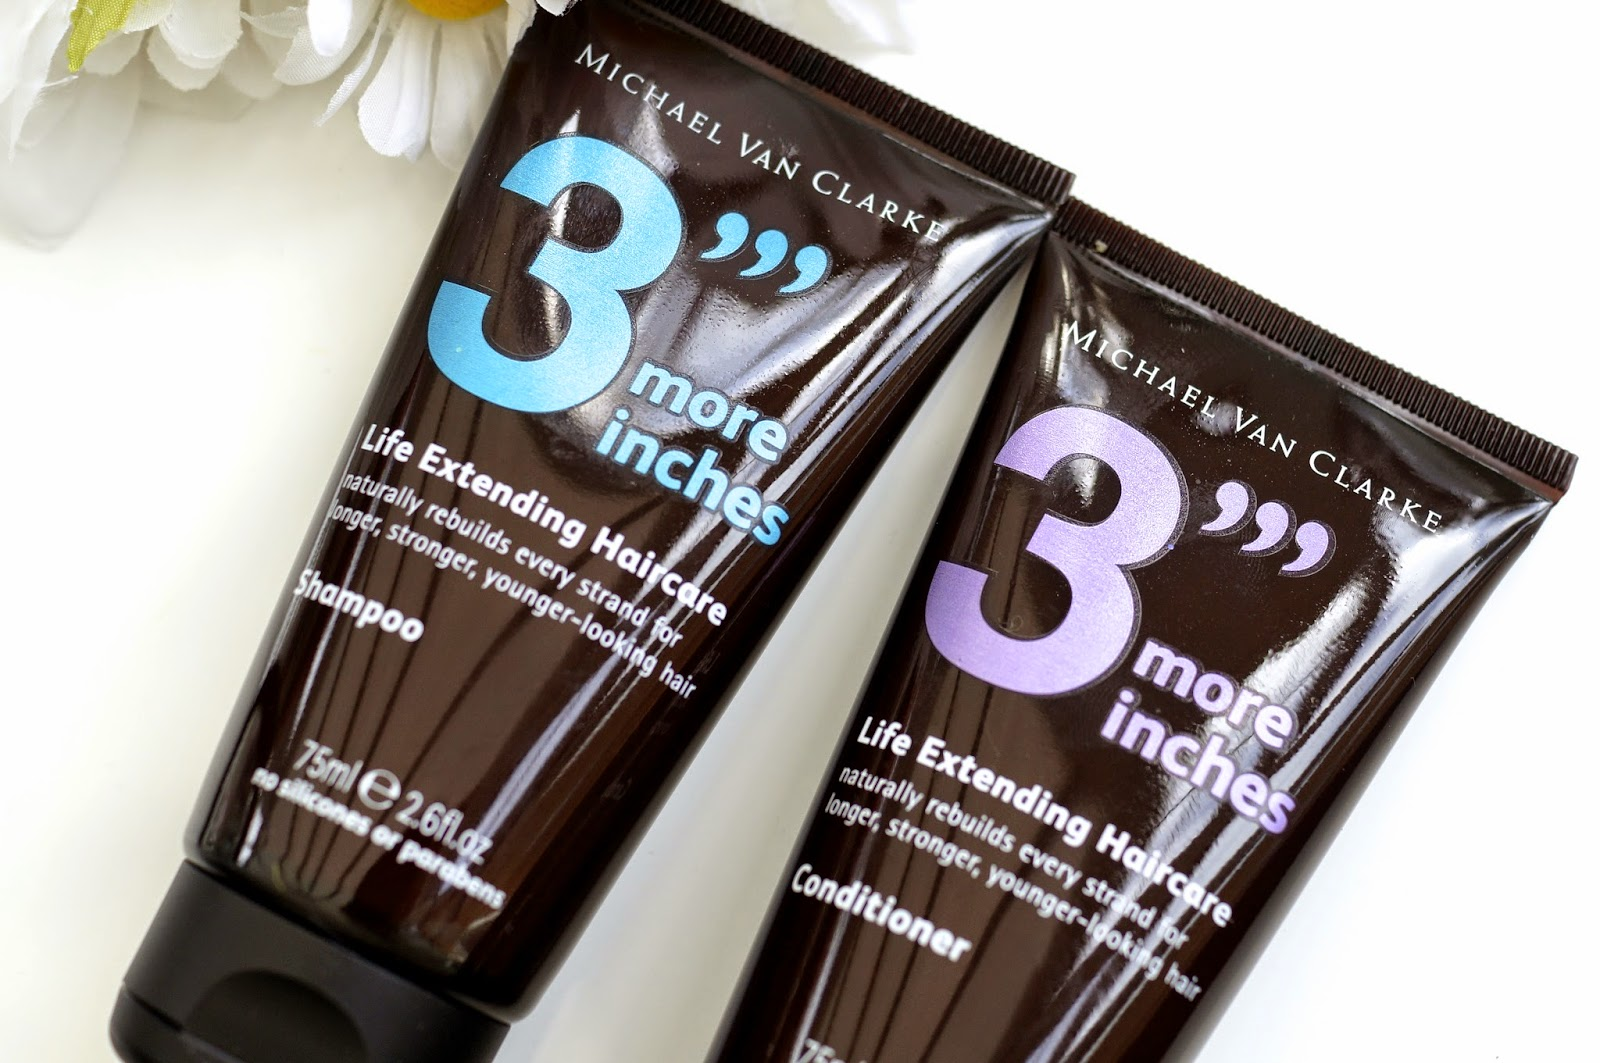 Michael Van Clarke 3 More Inches Life Extending Haircare